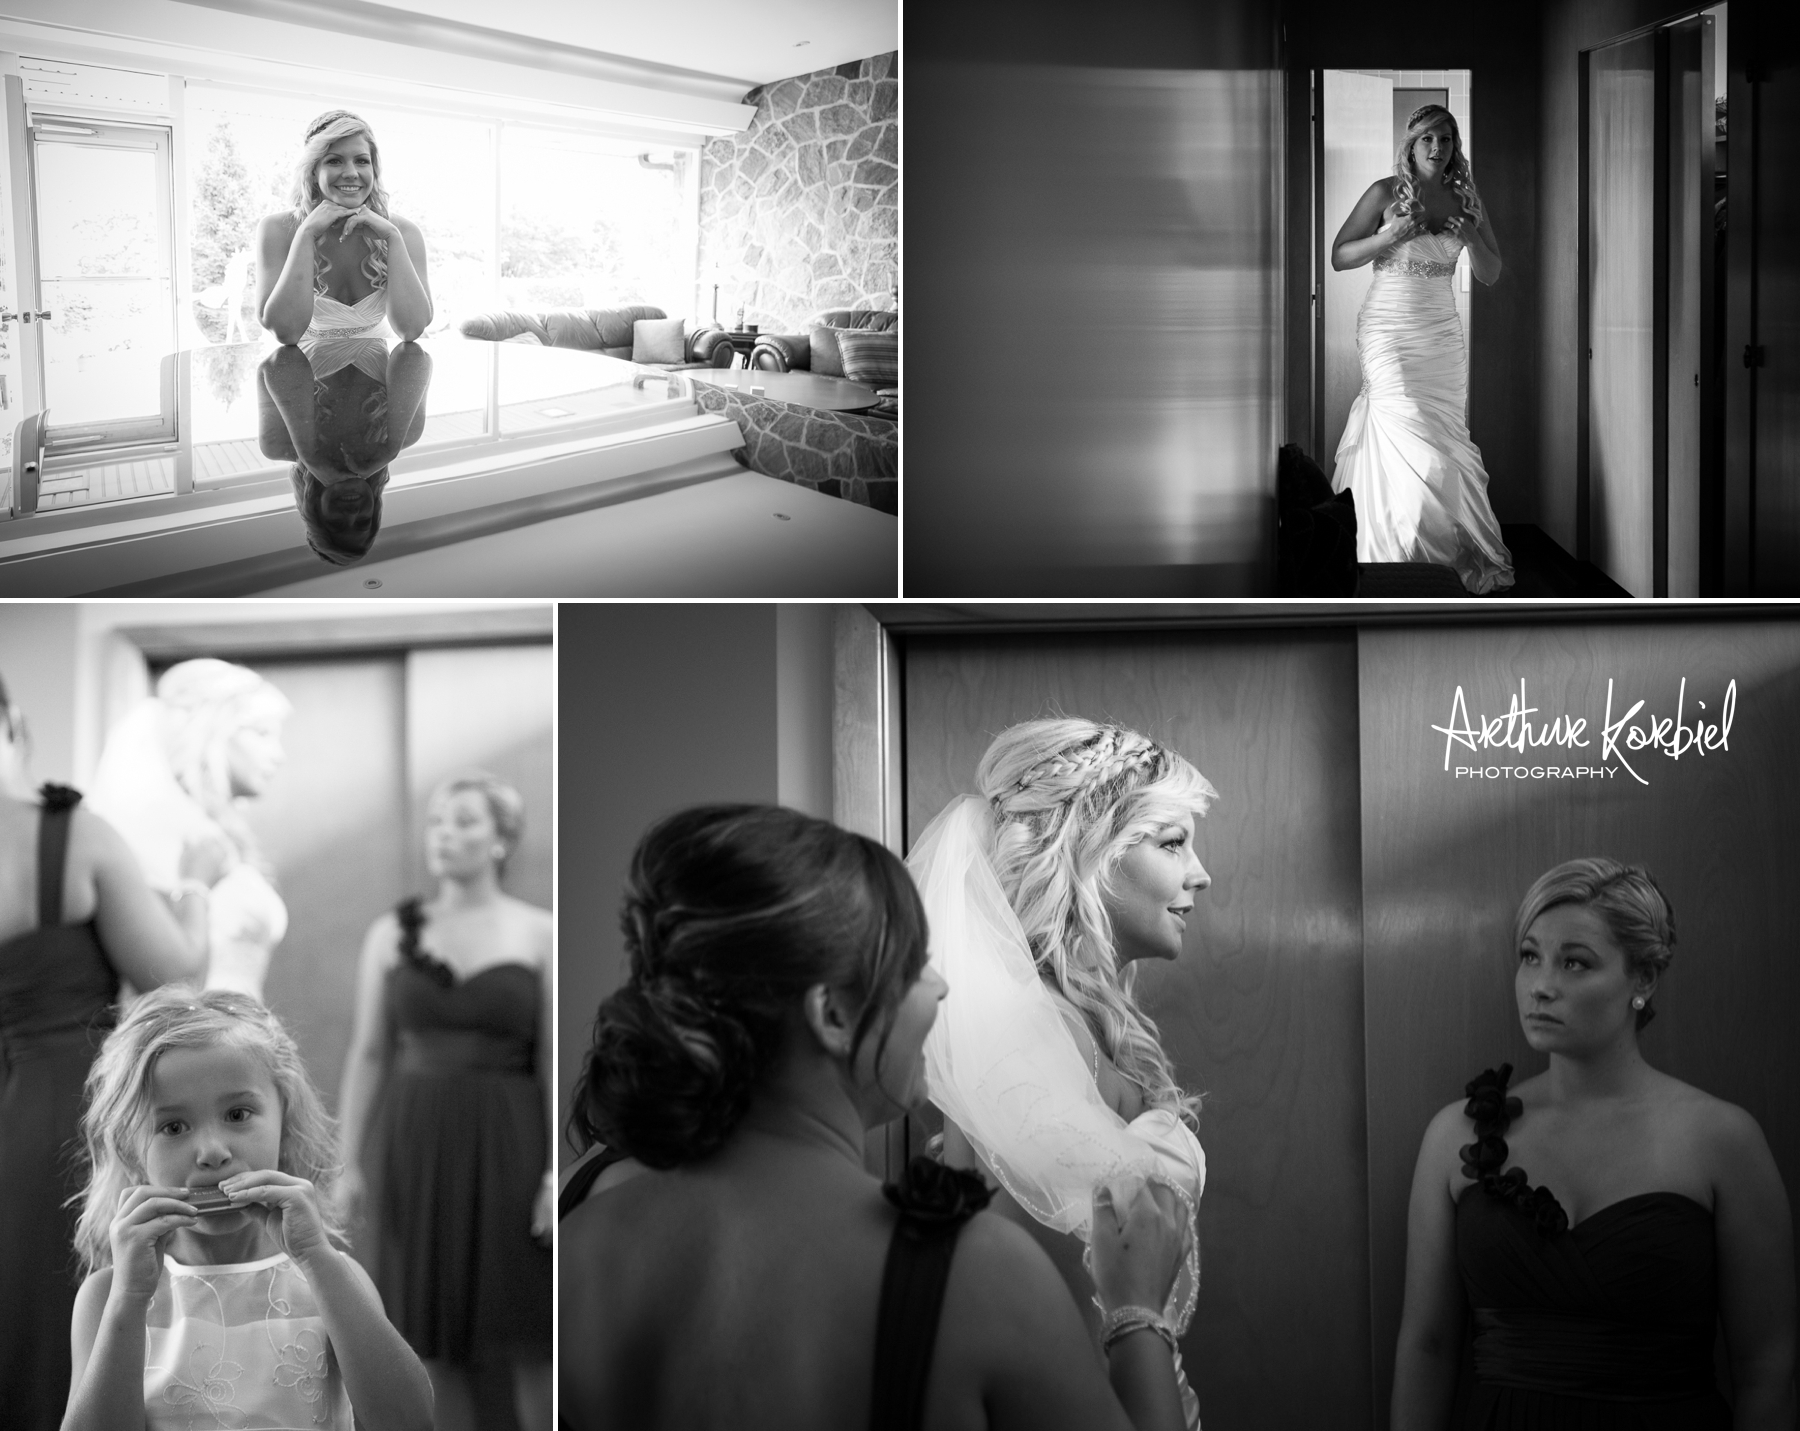 Arthur Korbiel Photography - London Wedding Photographer - Stone Willow Inn - St Marys & Stratford_015.jpg